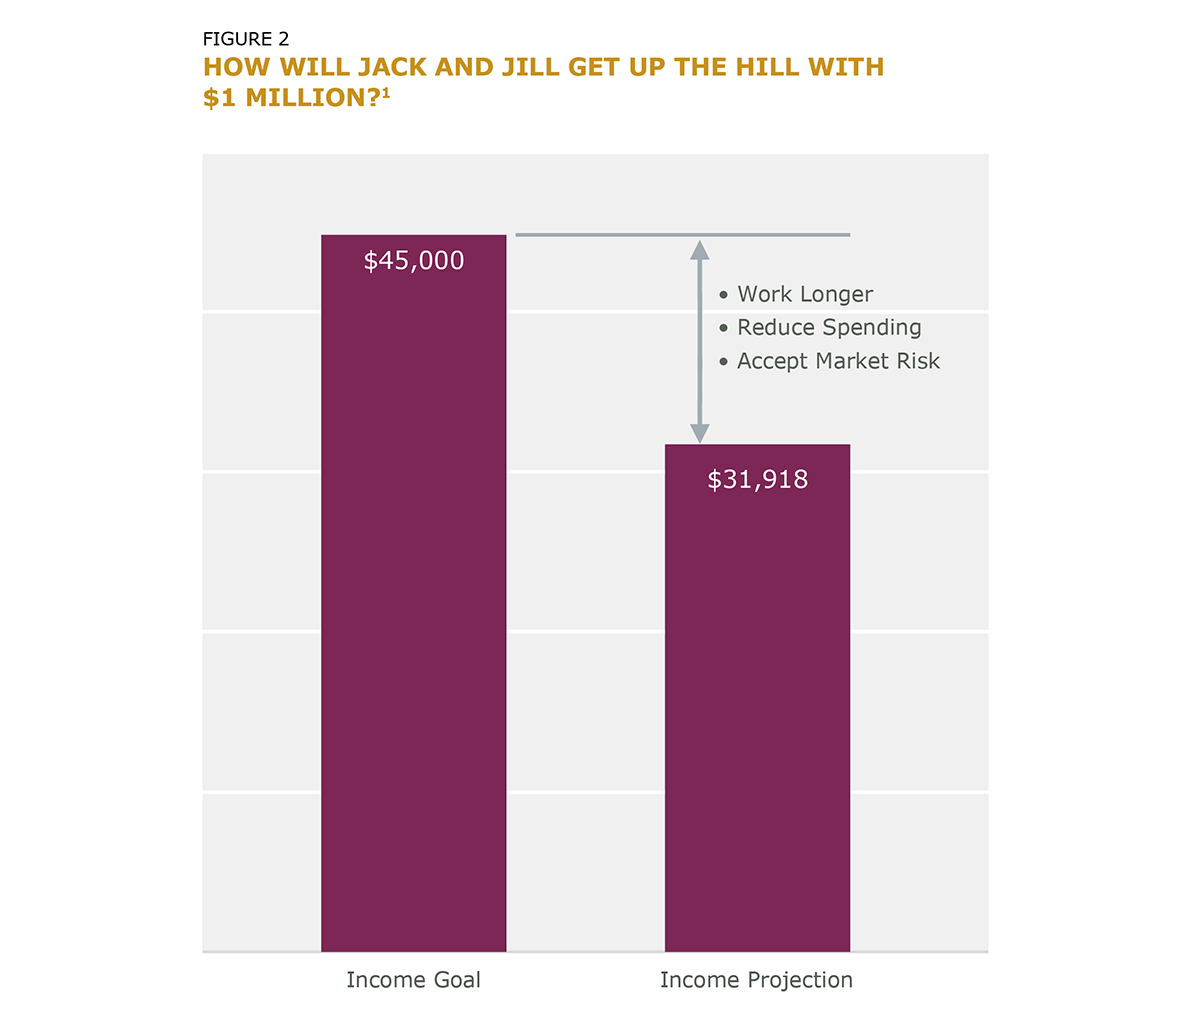 Figure 2 How Will Jack and Jill Get Up the Hill with $1 Million?